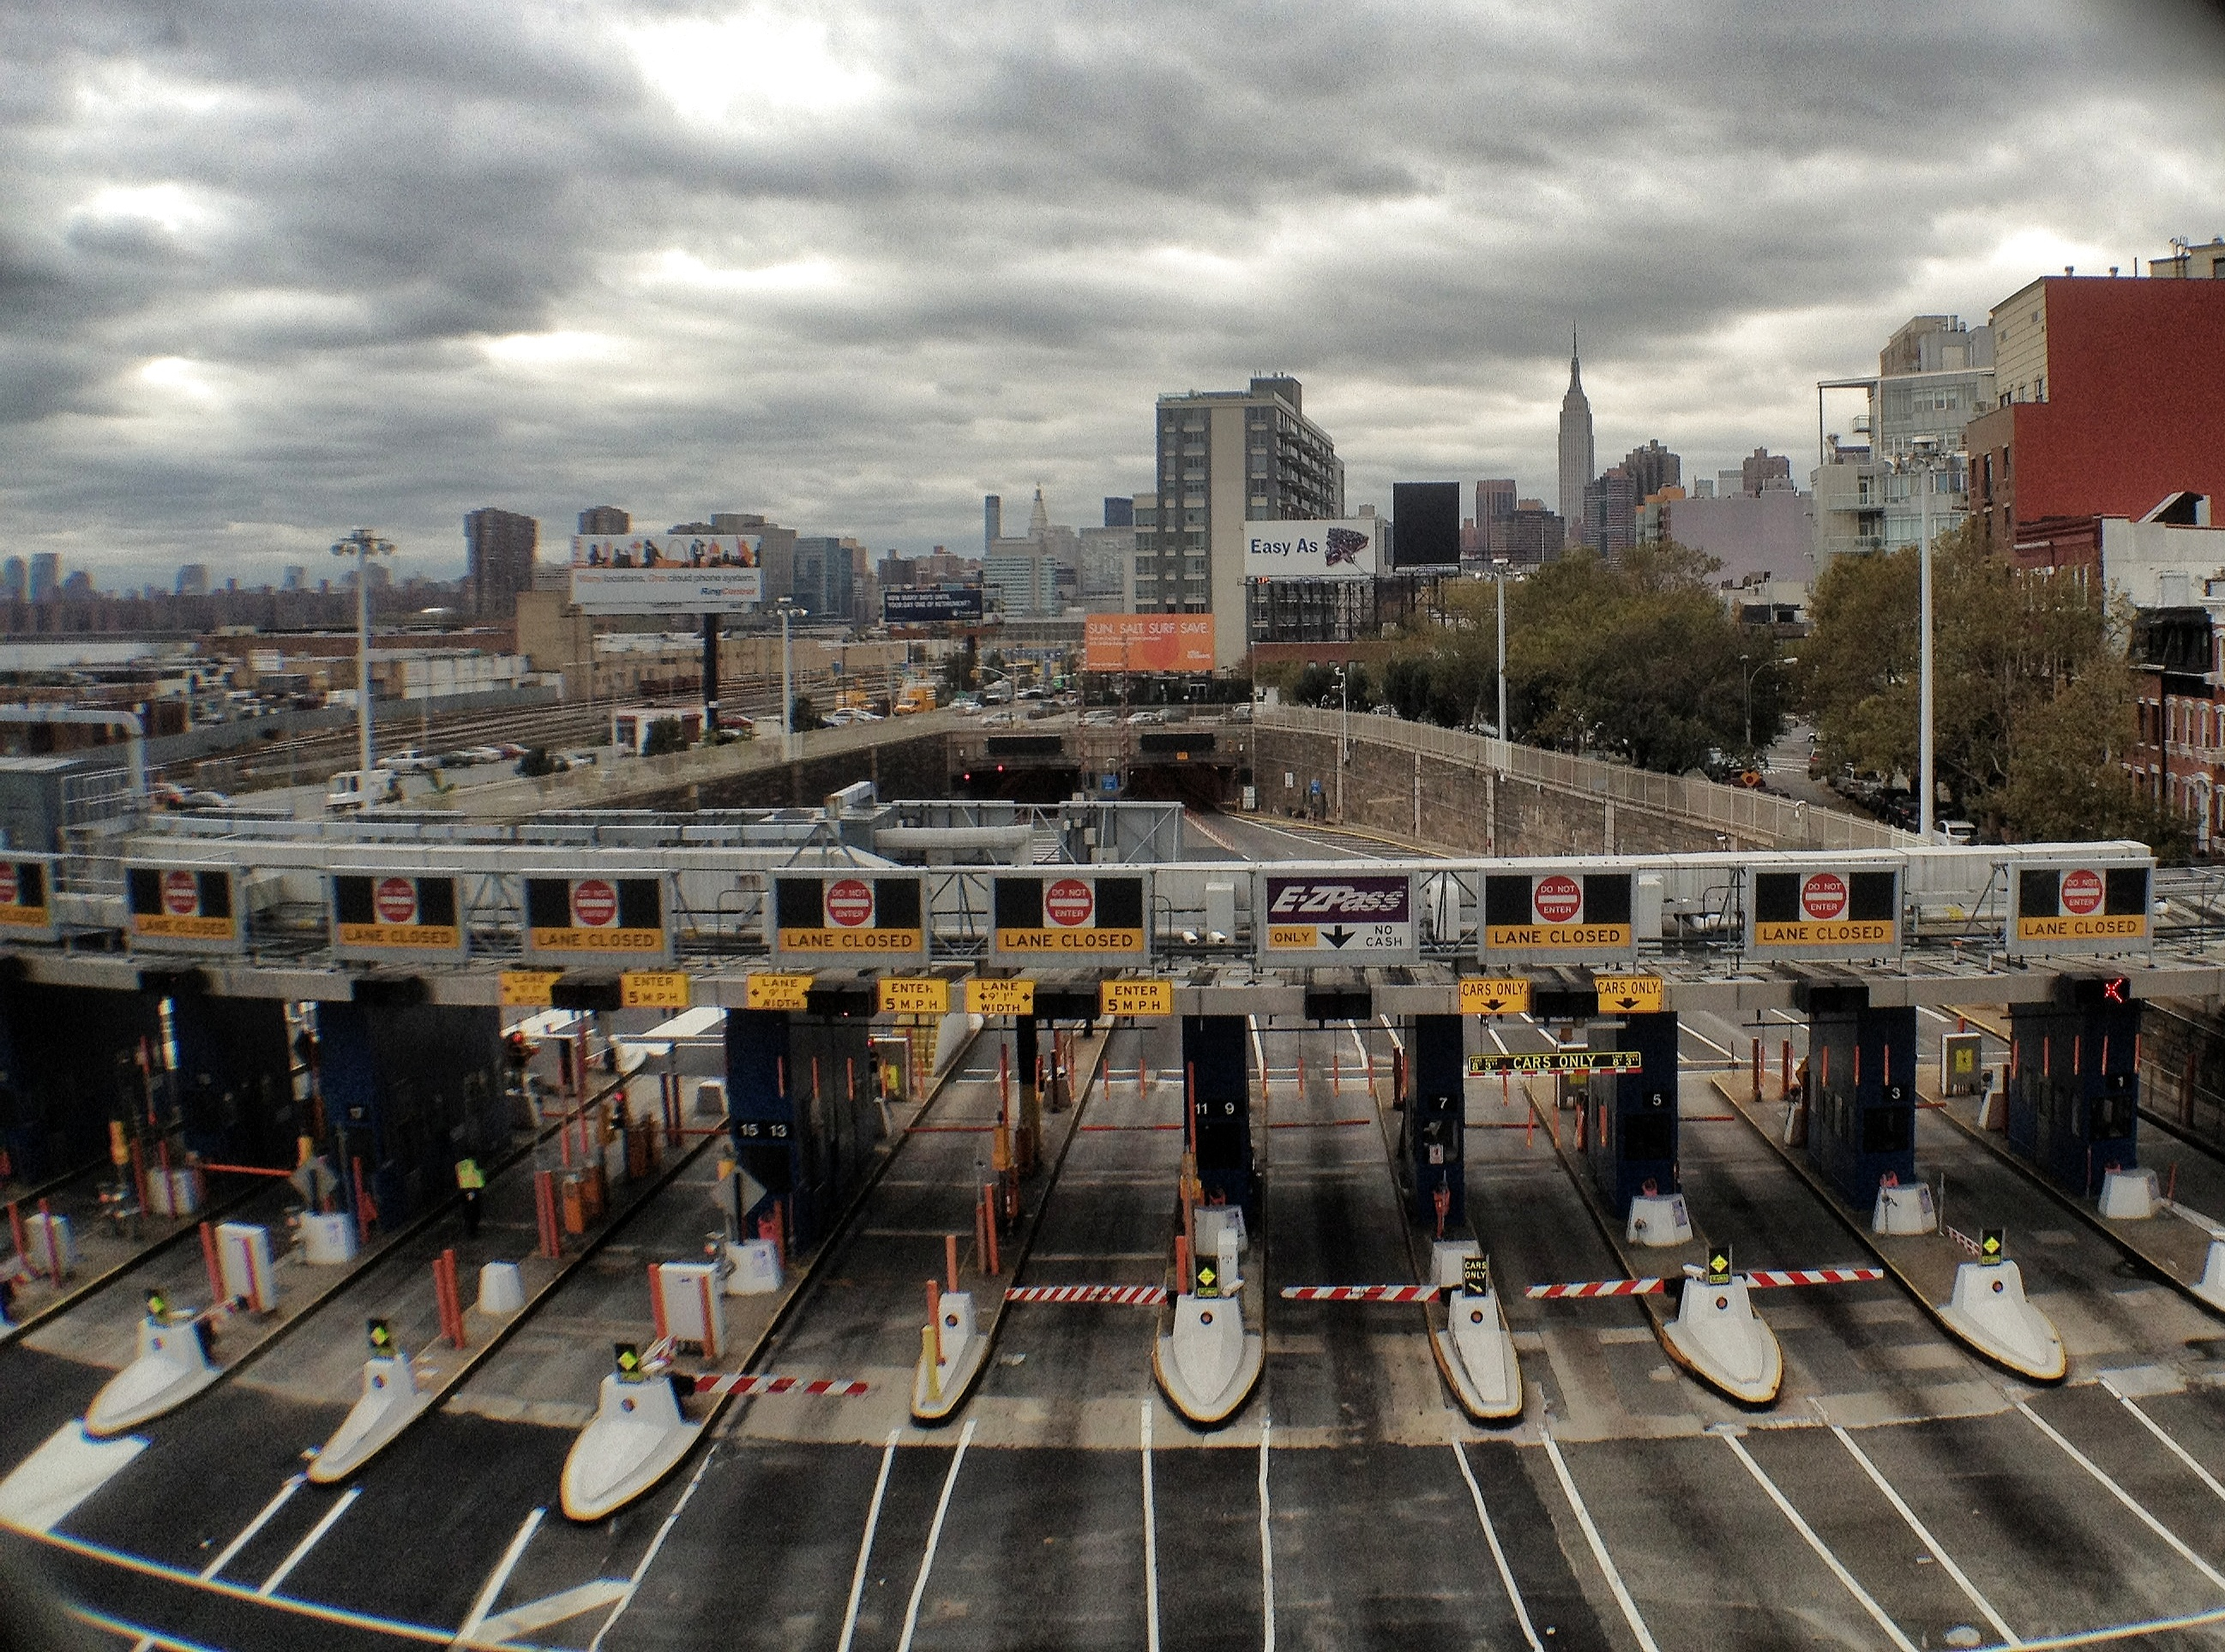 Midtown tunnel during Hurricane Sandy aftermath